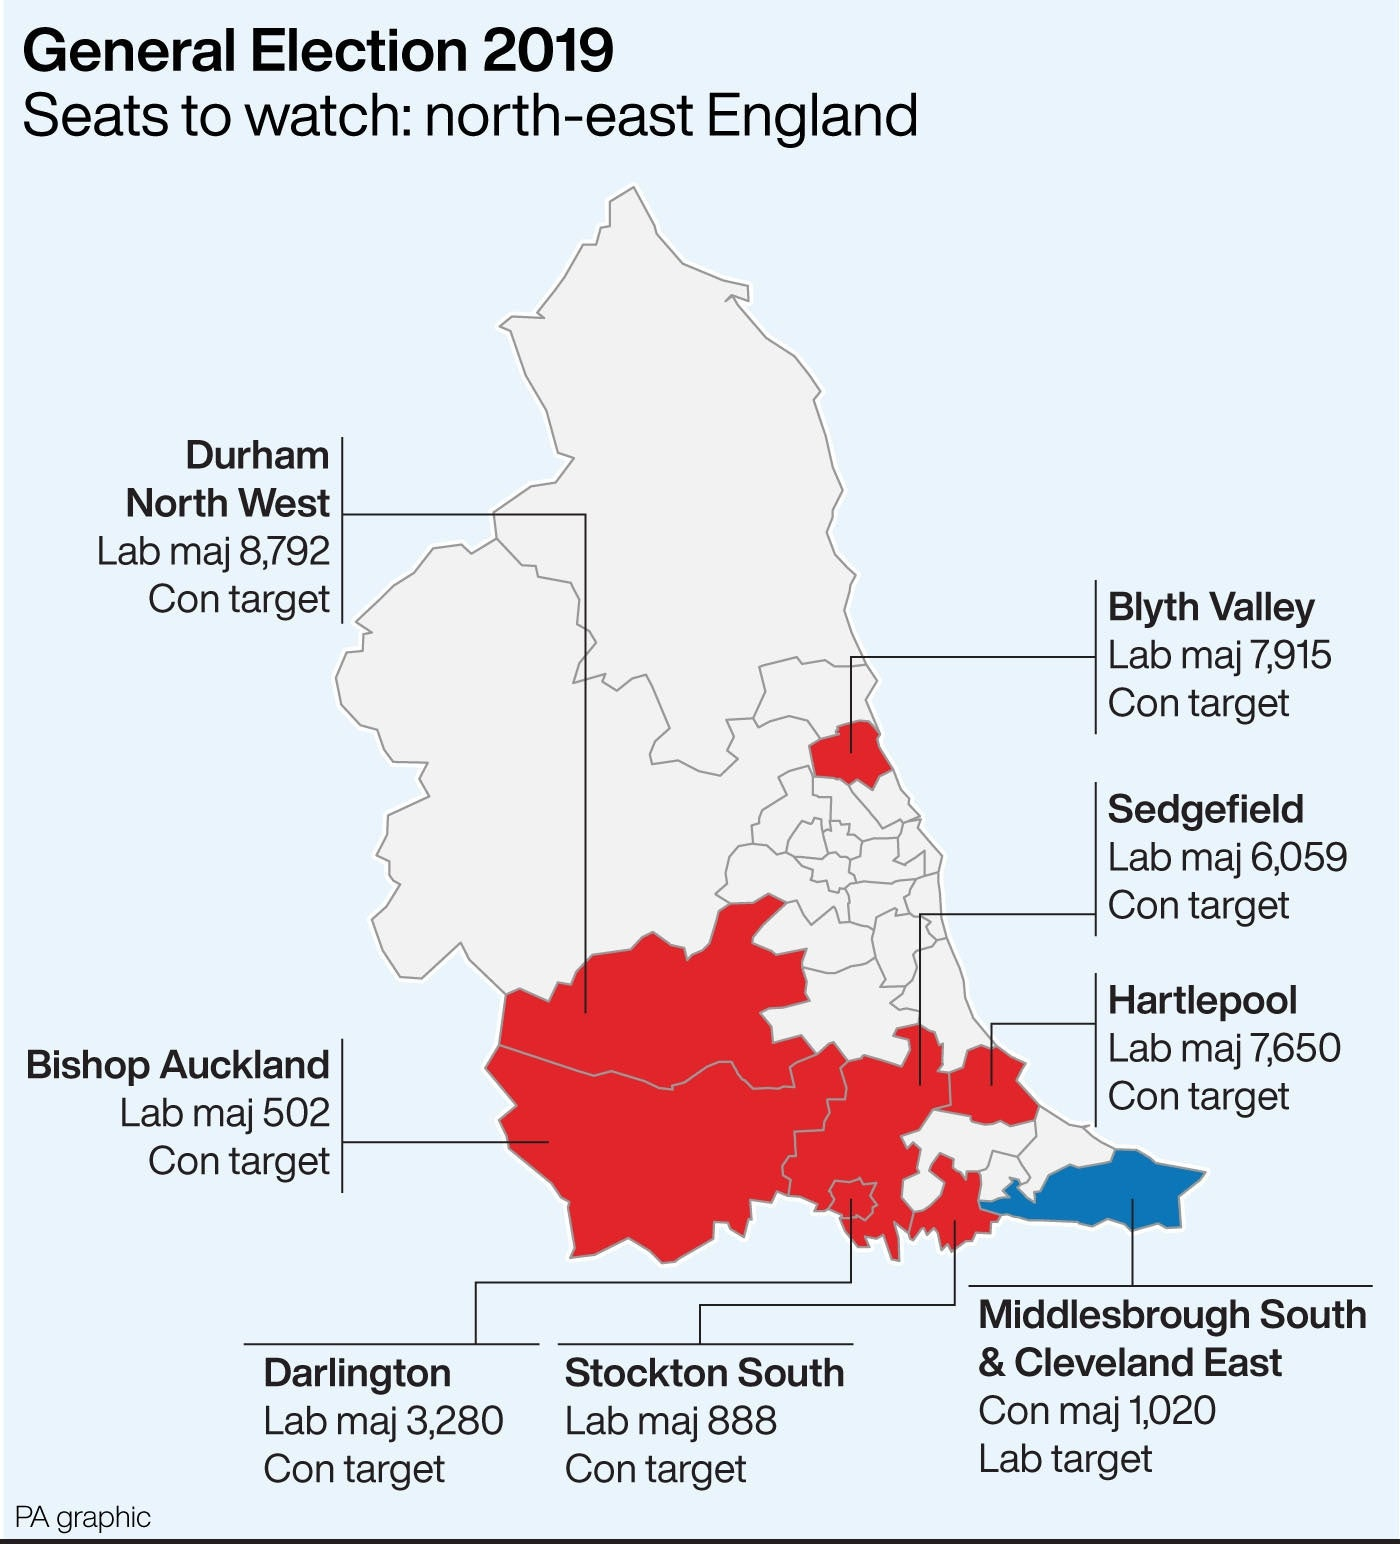 Seats to watch in north-east England